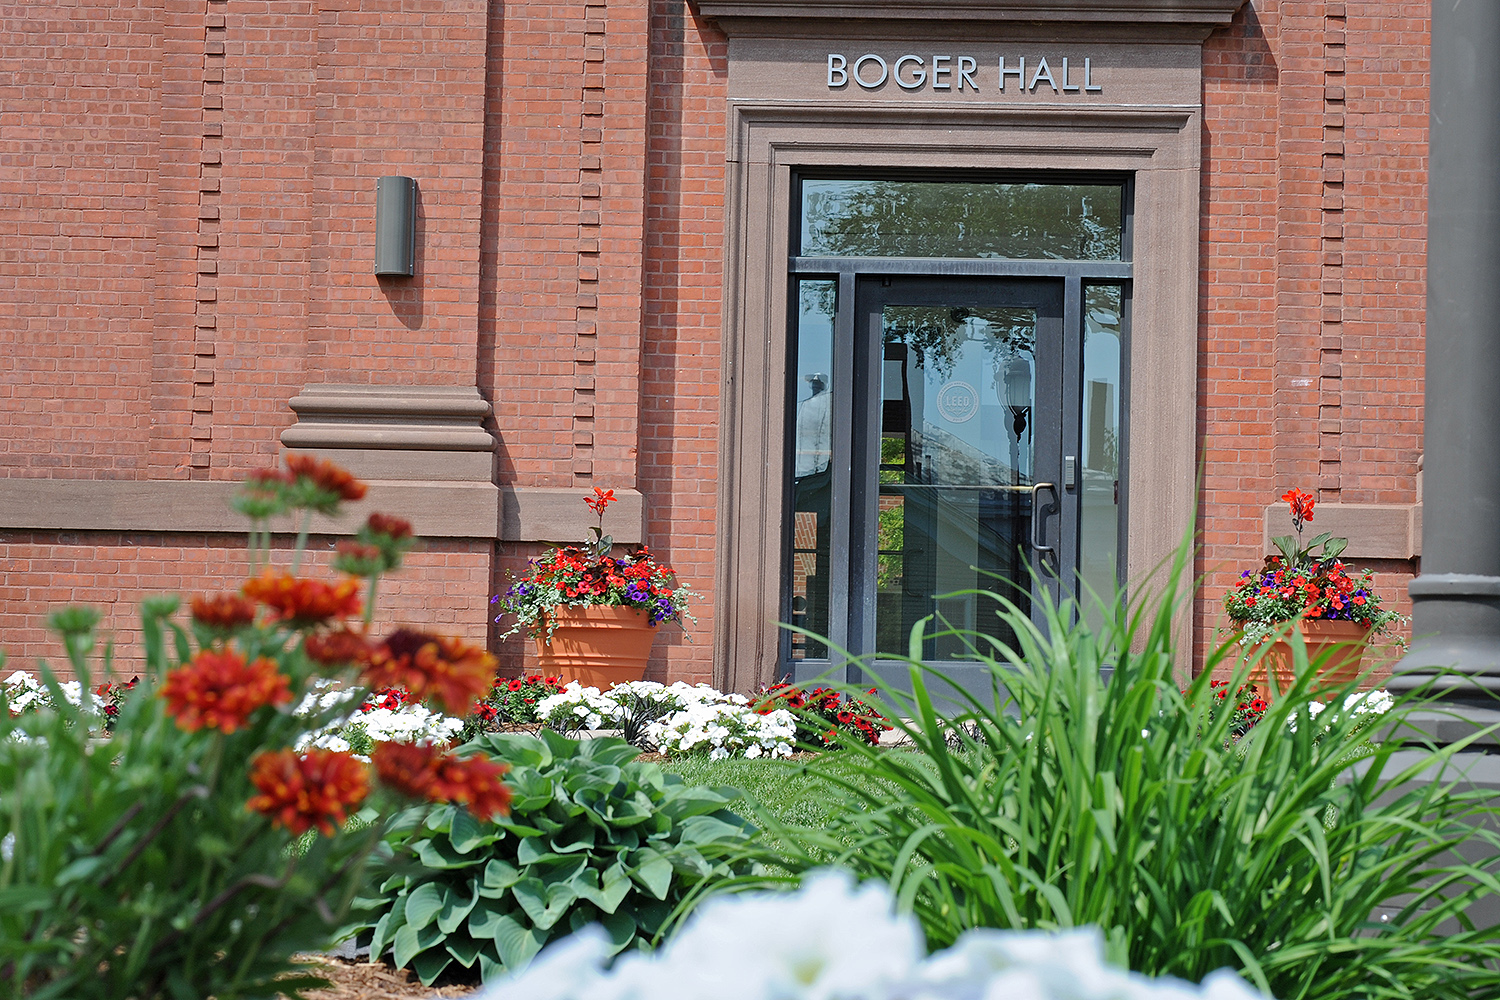 Petunias, geraniums and other flowers are planted near Boger Hall.